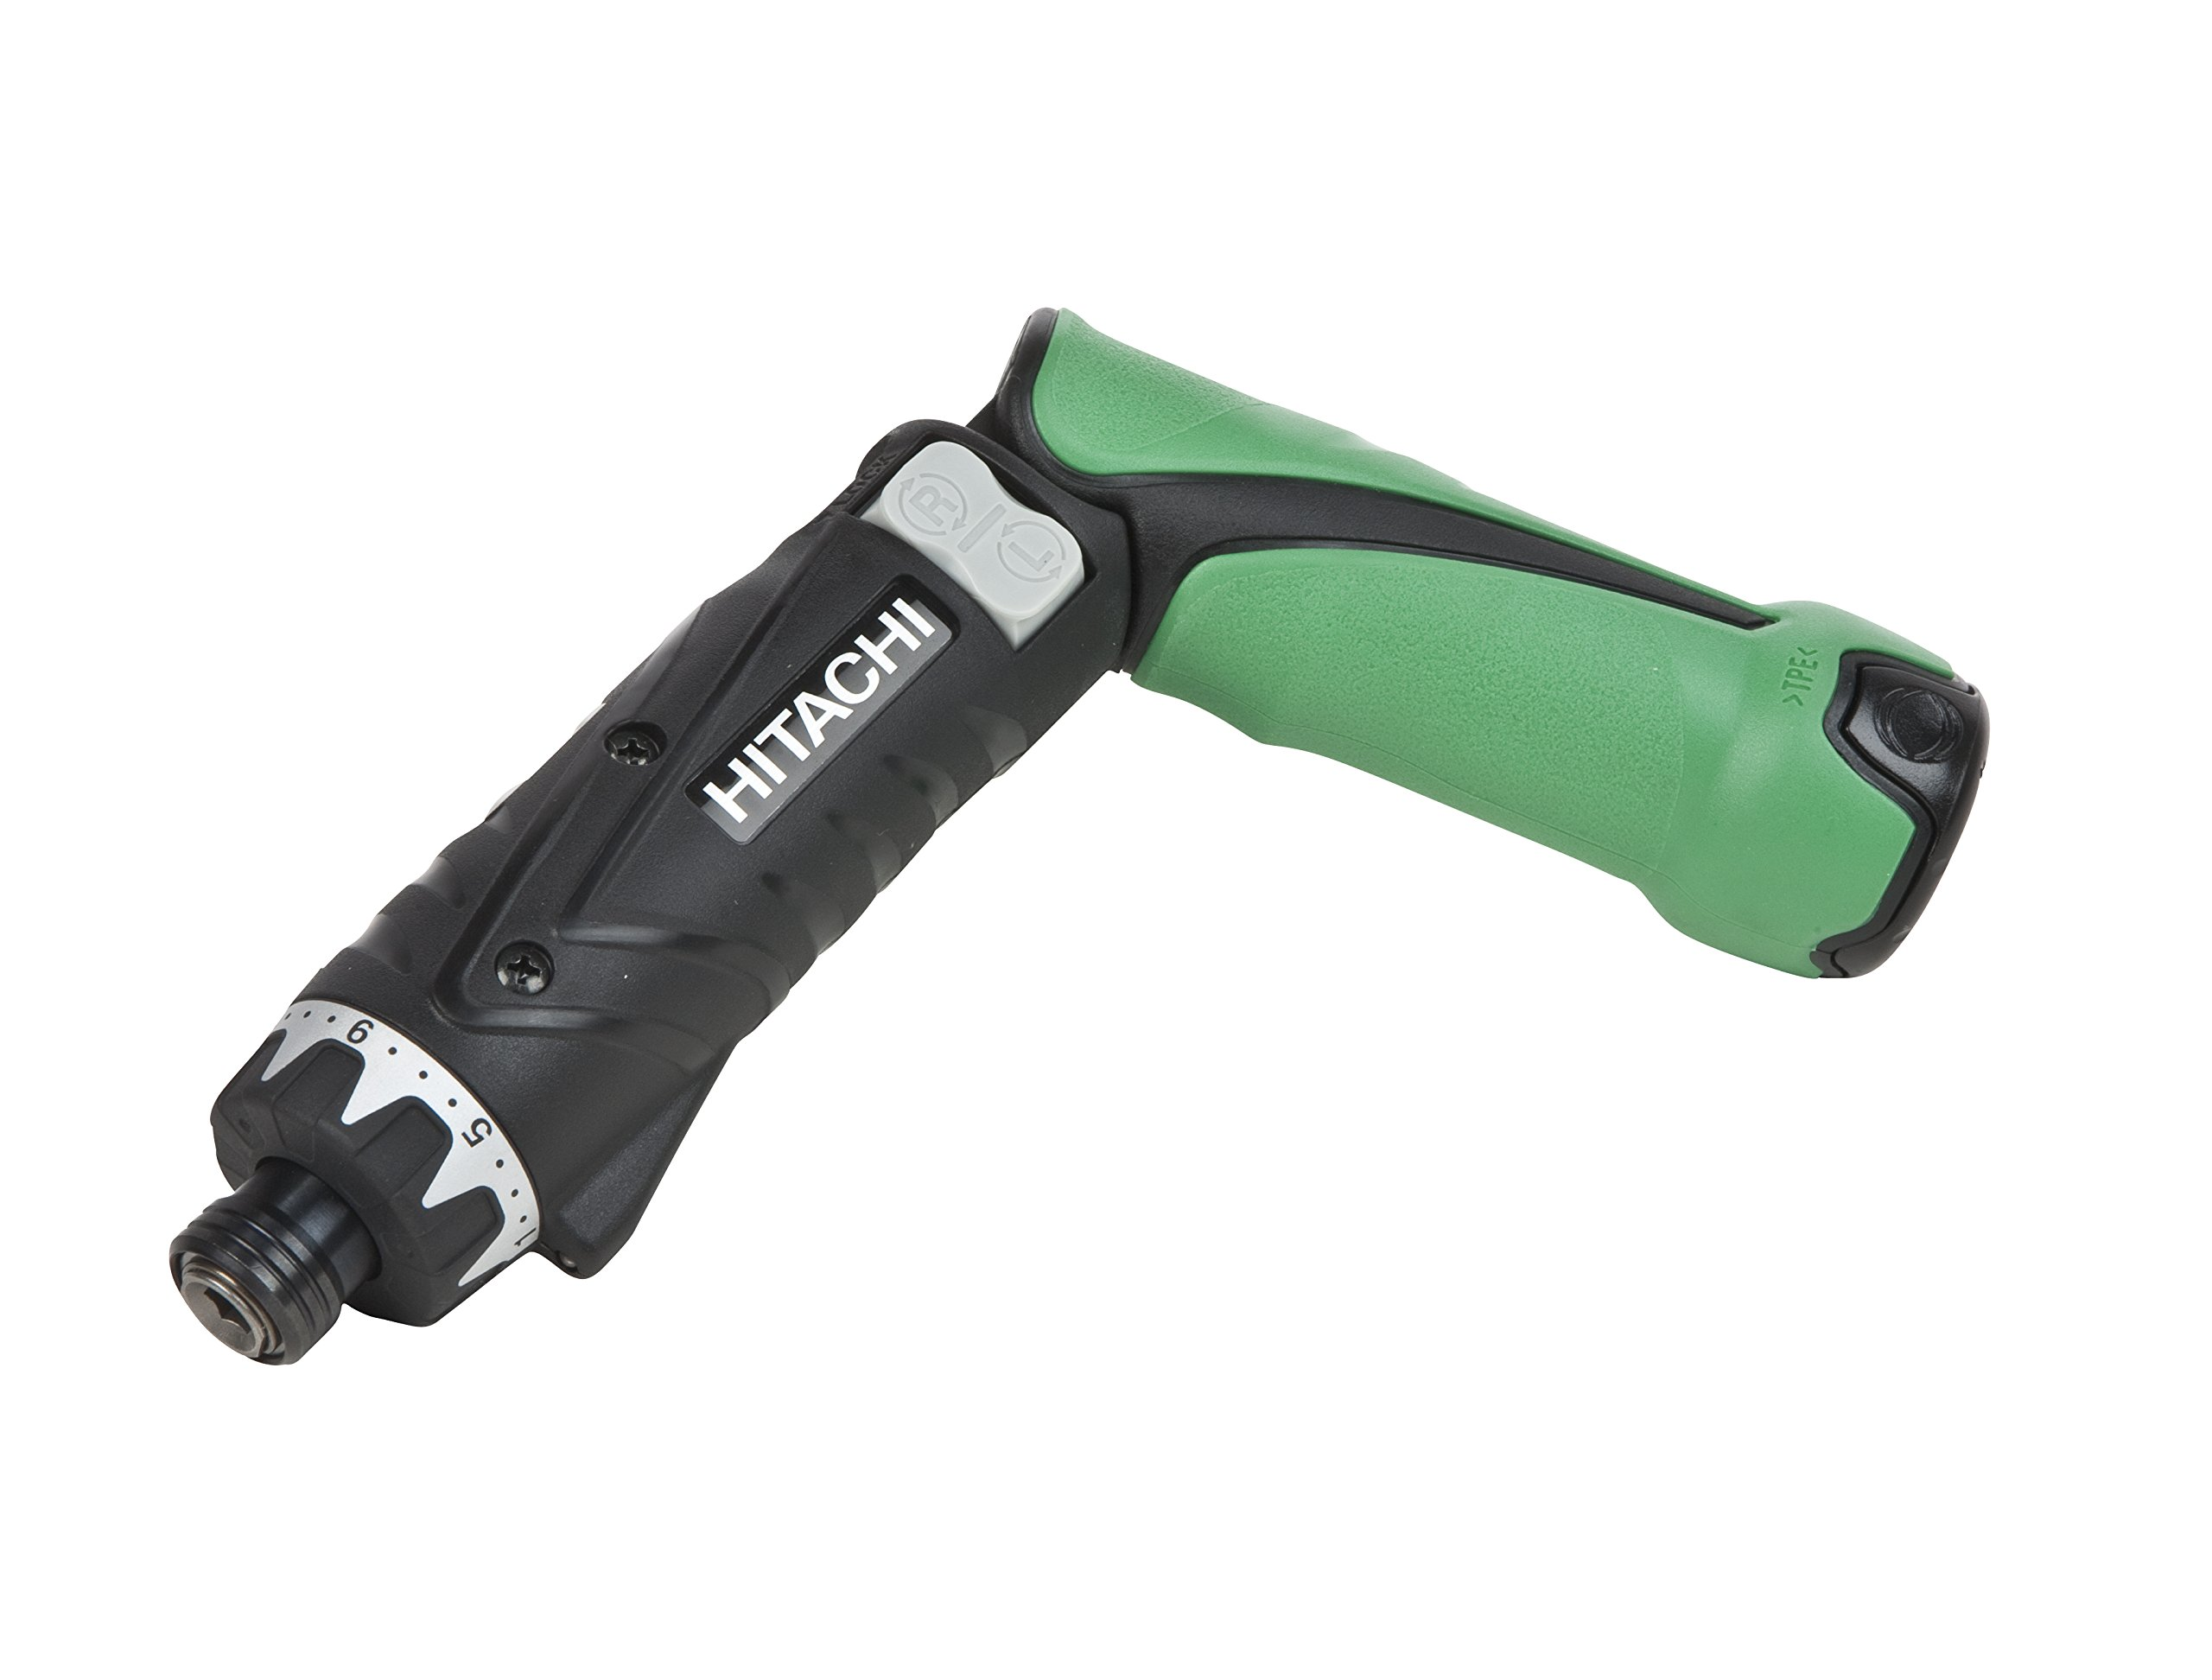 Hitachi DB3DL2 Power Cordless Screwdriver Kit, 3.6V 1.5Ah Lithium Ion Battery - 2, Dual Position, LED Light, Lifetime Tool Warranty (Discontinued by the Manufacturer)